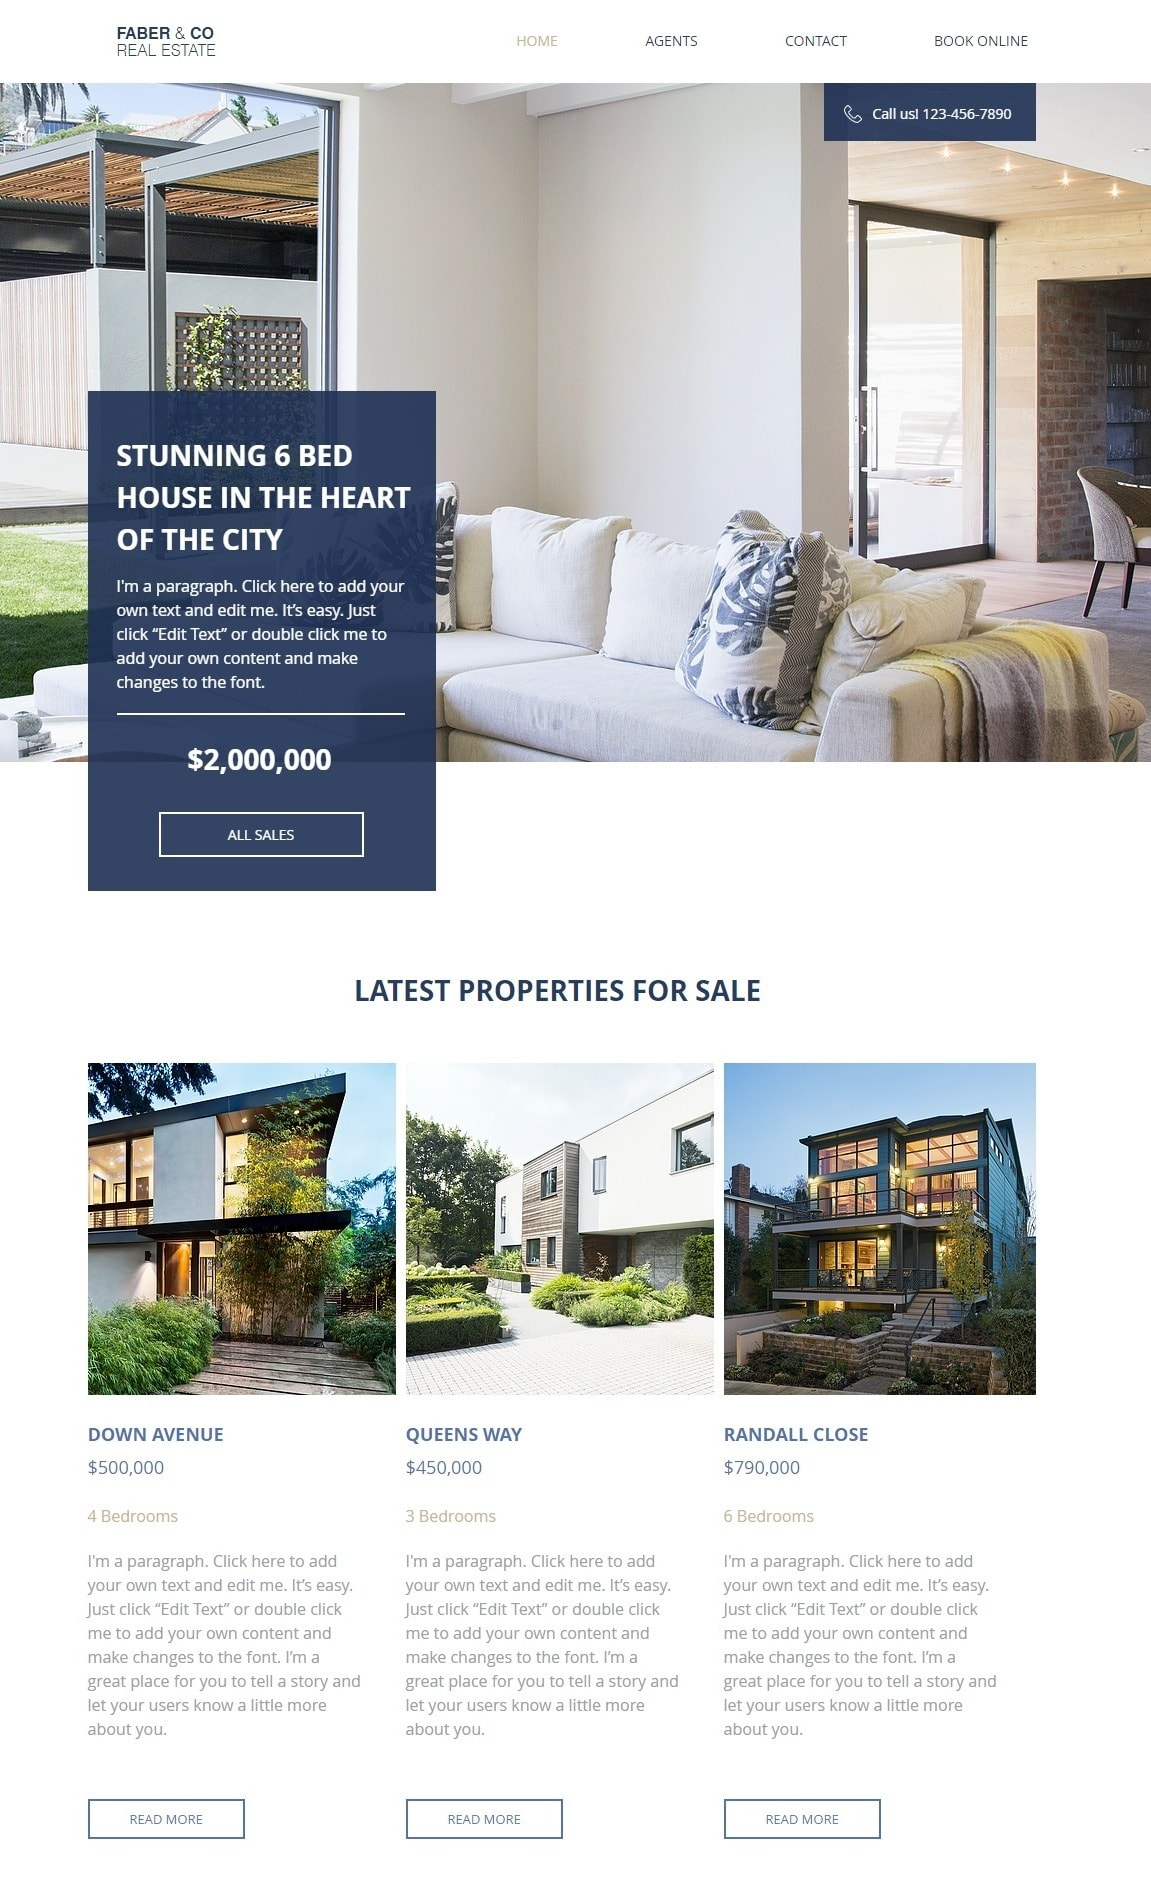 6 Best Wix Real Estate Templates (+2 Worst)-image3